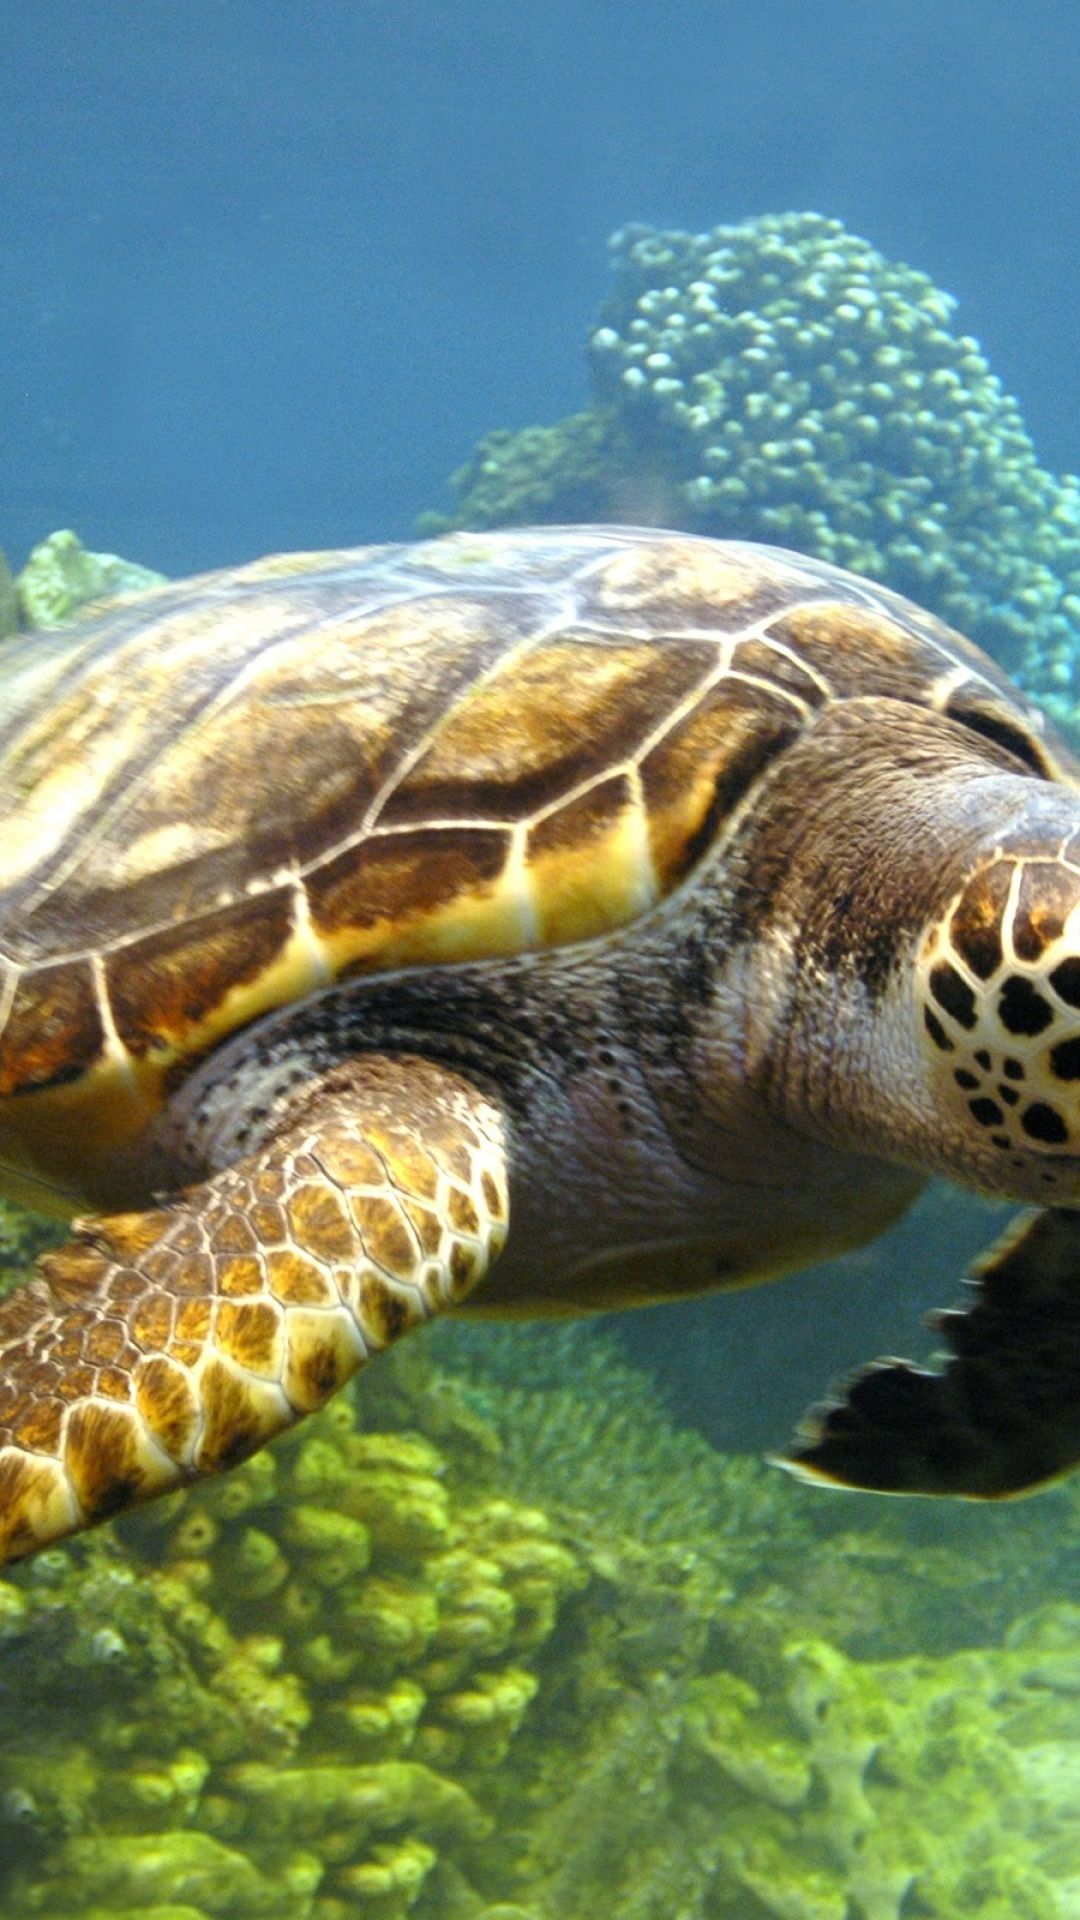 1080x1920 Free 3d Turtles Photography Hd Wallpapers Download